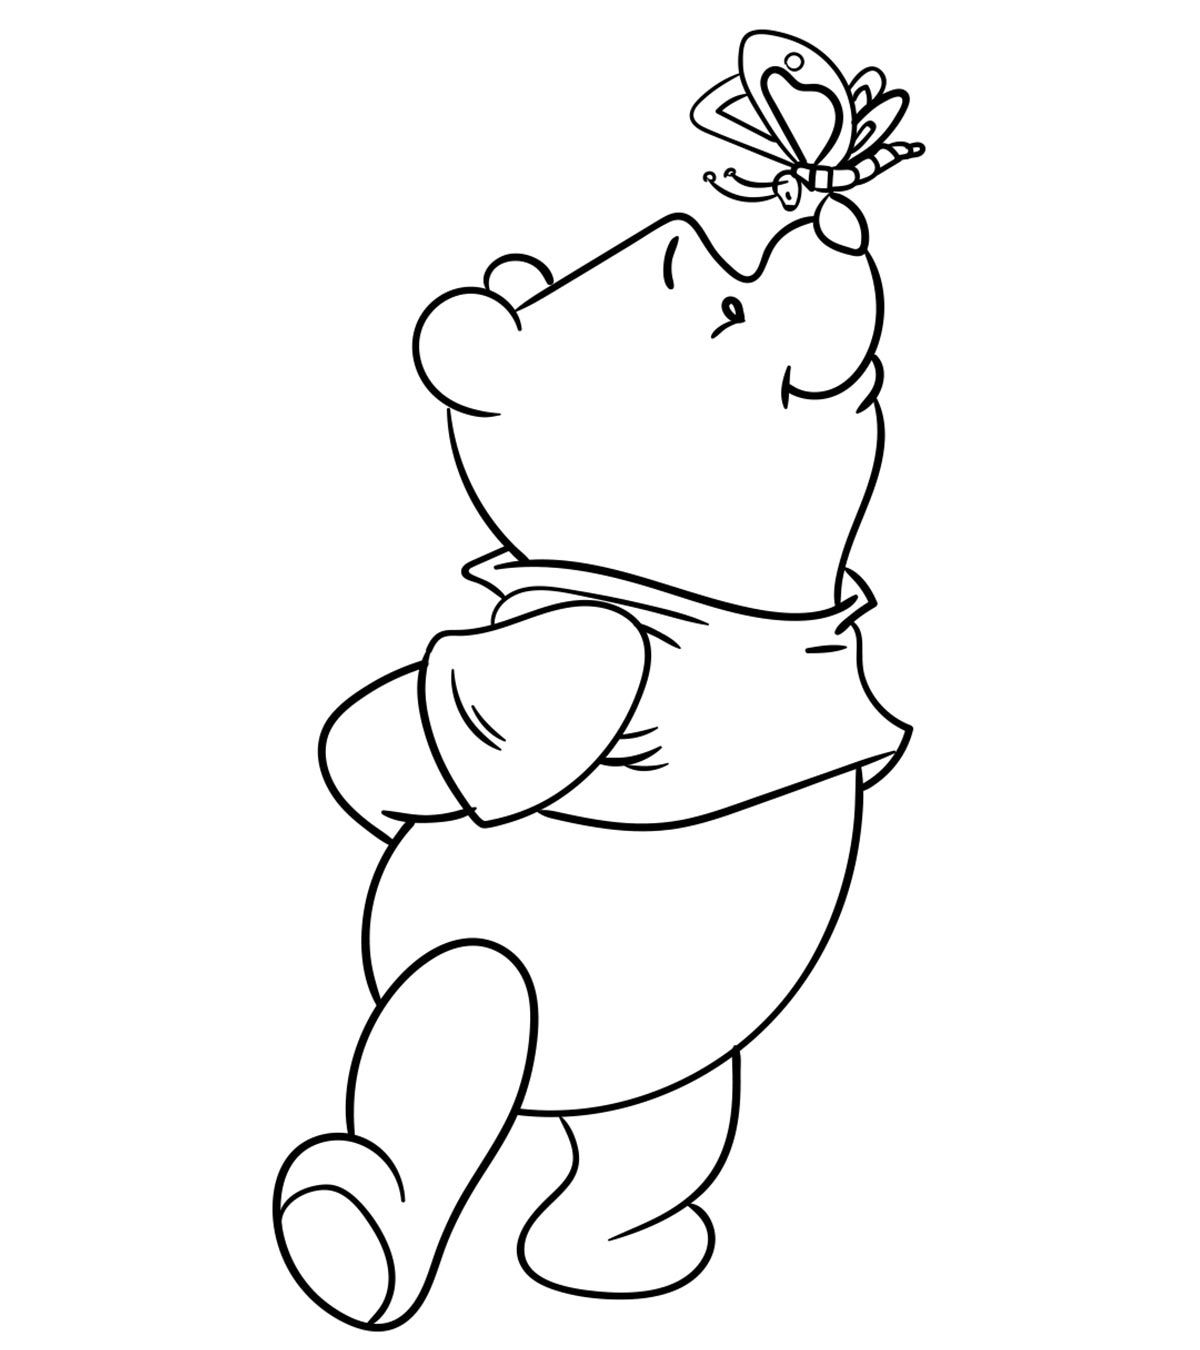 Top 30 Free Printable Cute Winnie The Pooh Coloring Pages